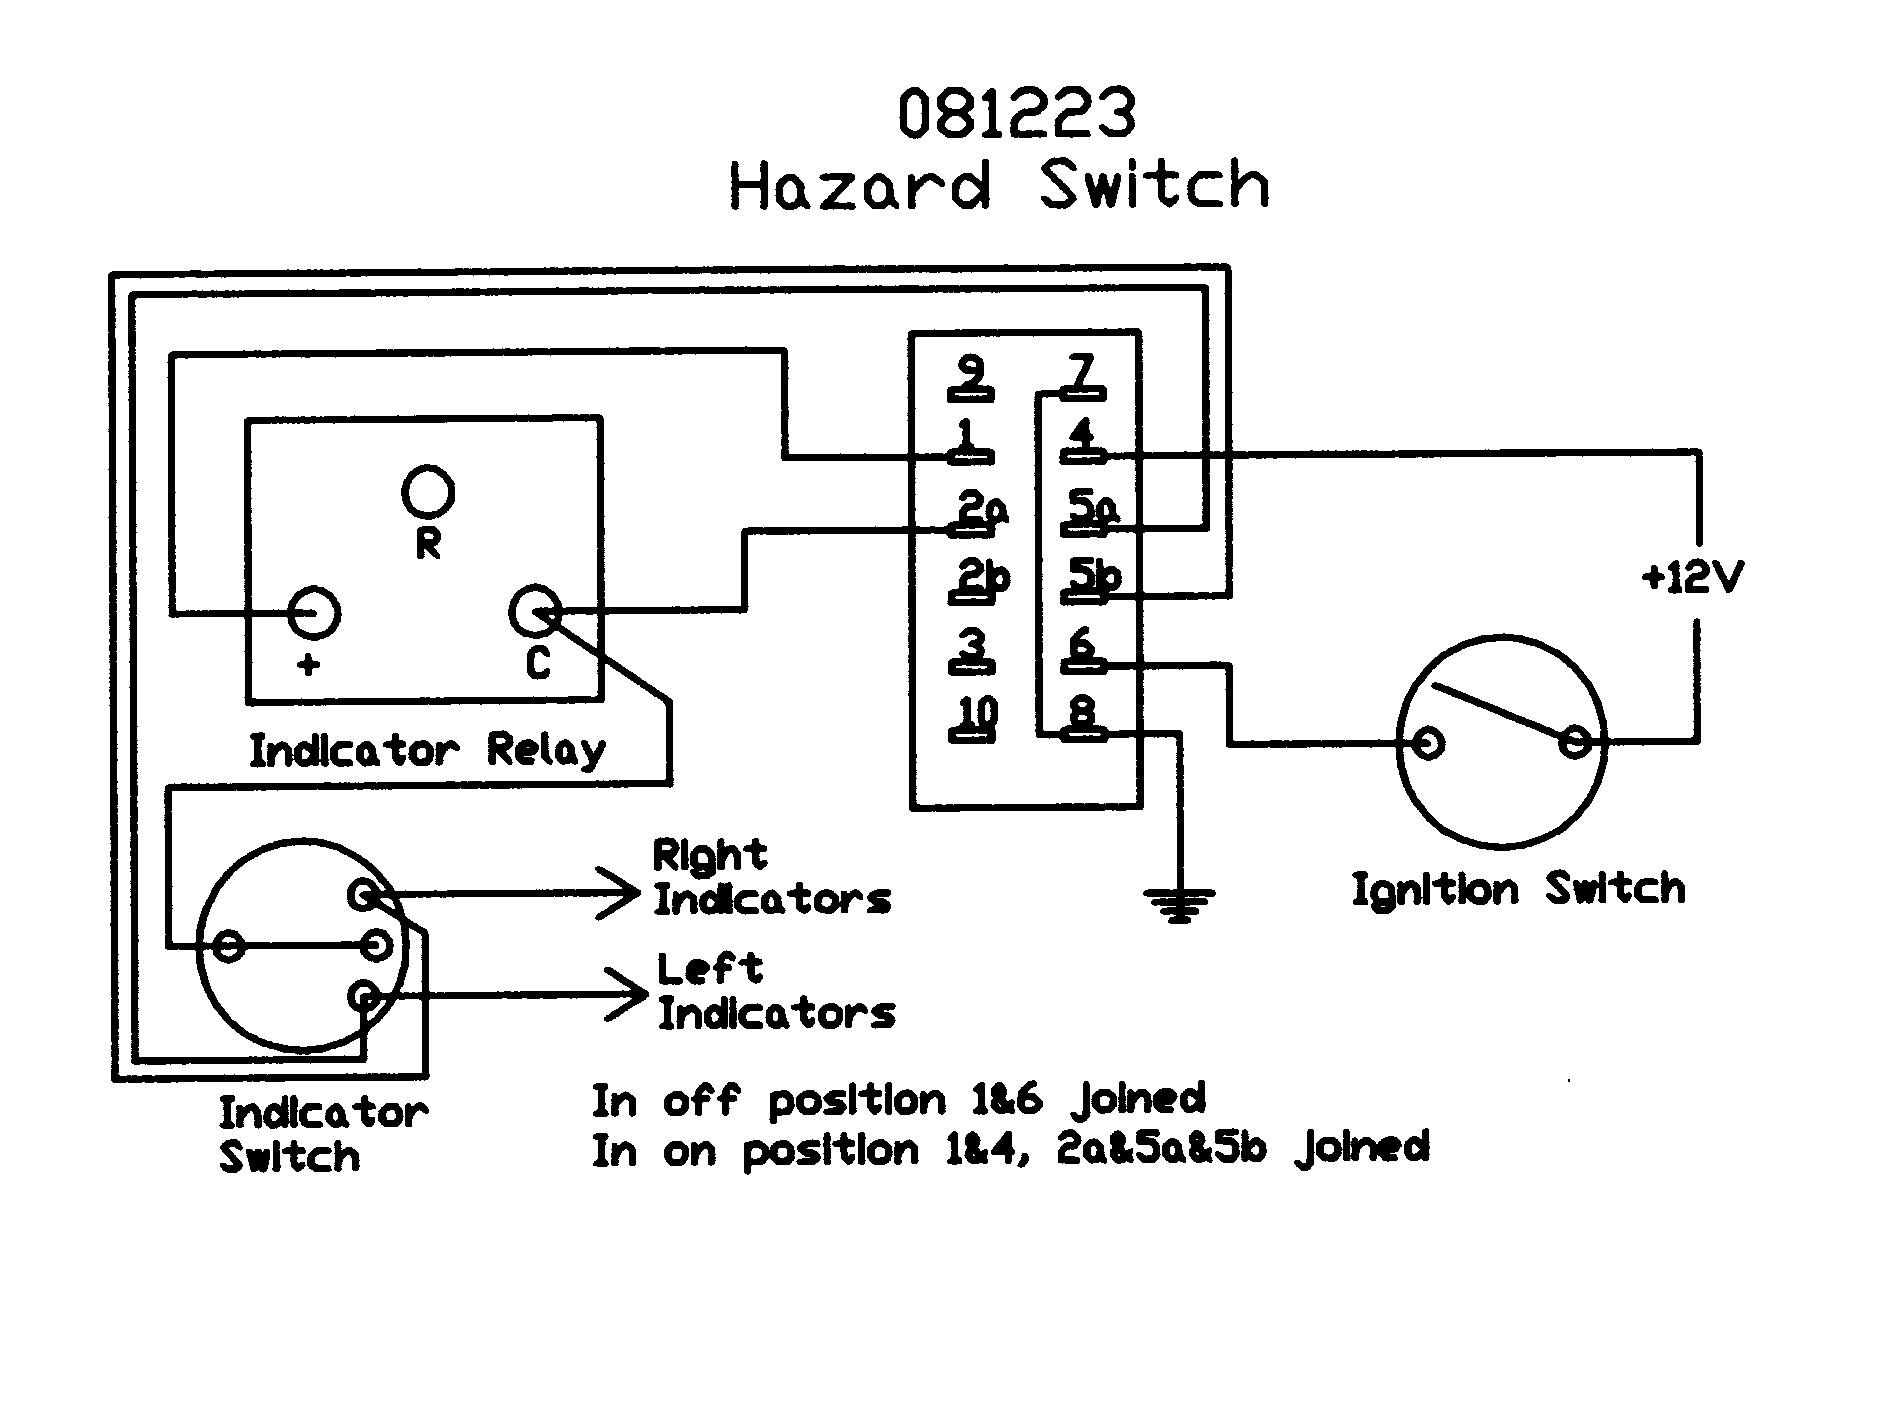 Light Switch Drawing At Free For Personal Use Wiring Diagram 1904x1424 Rocker Hazard